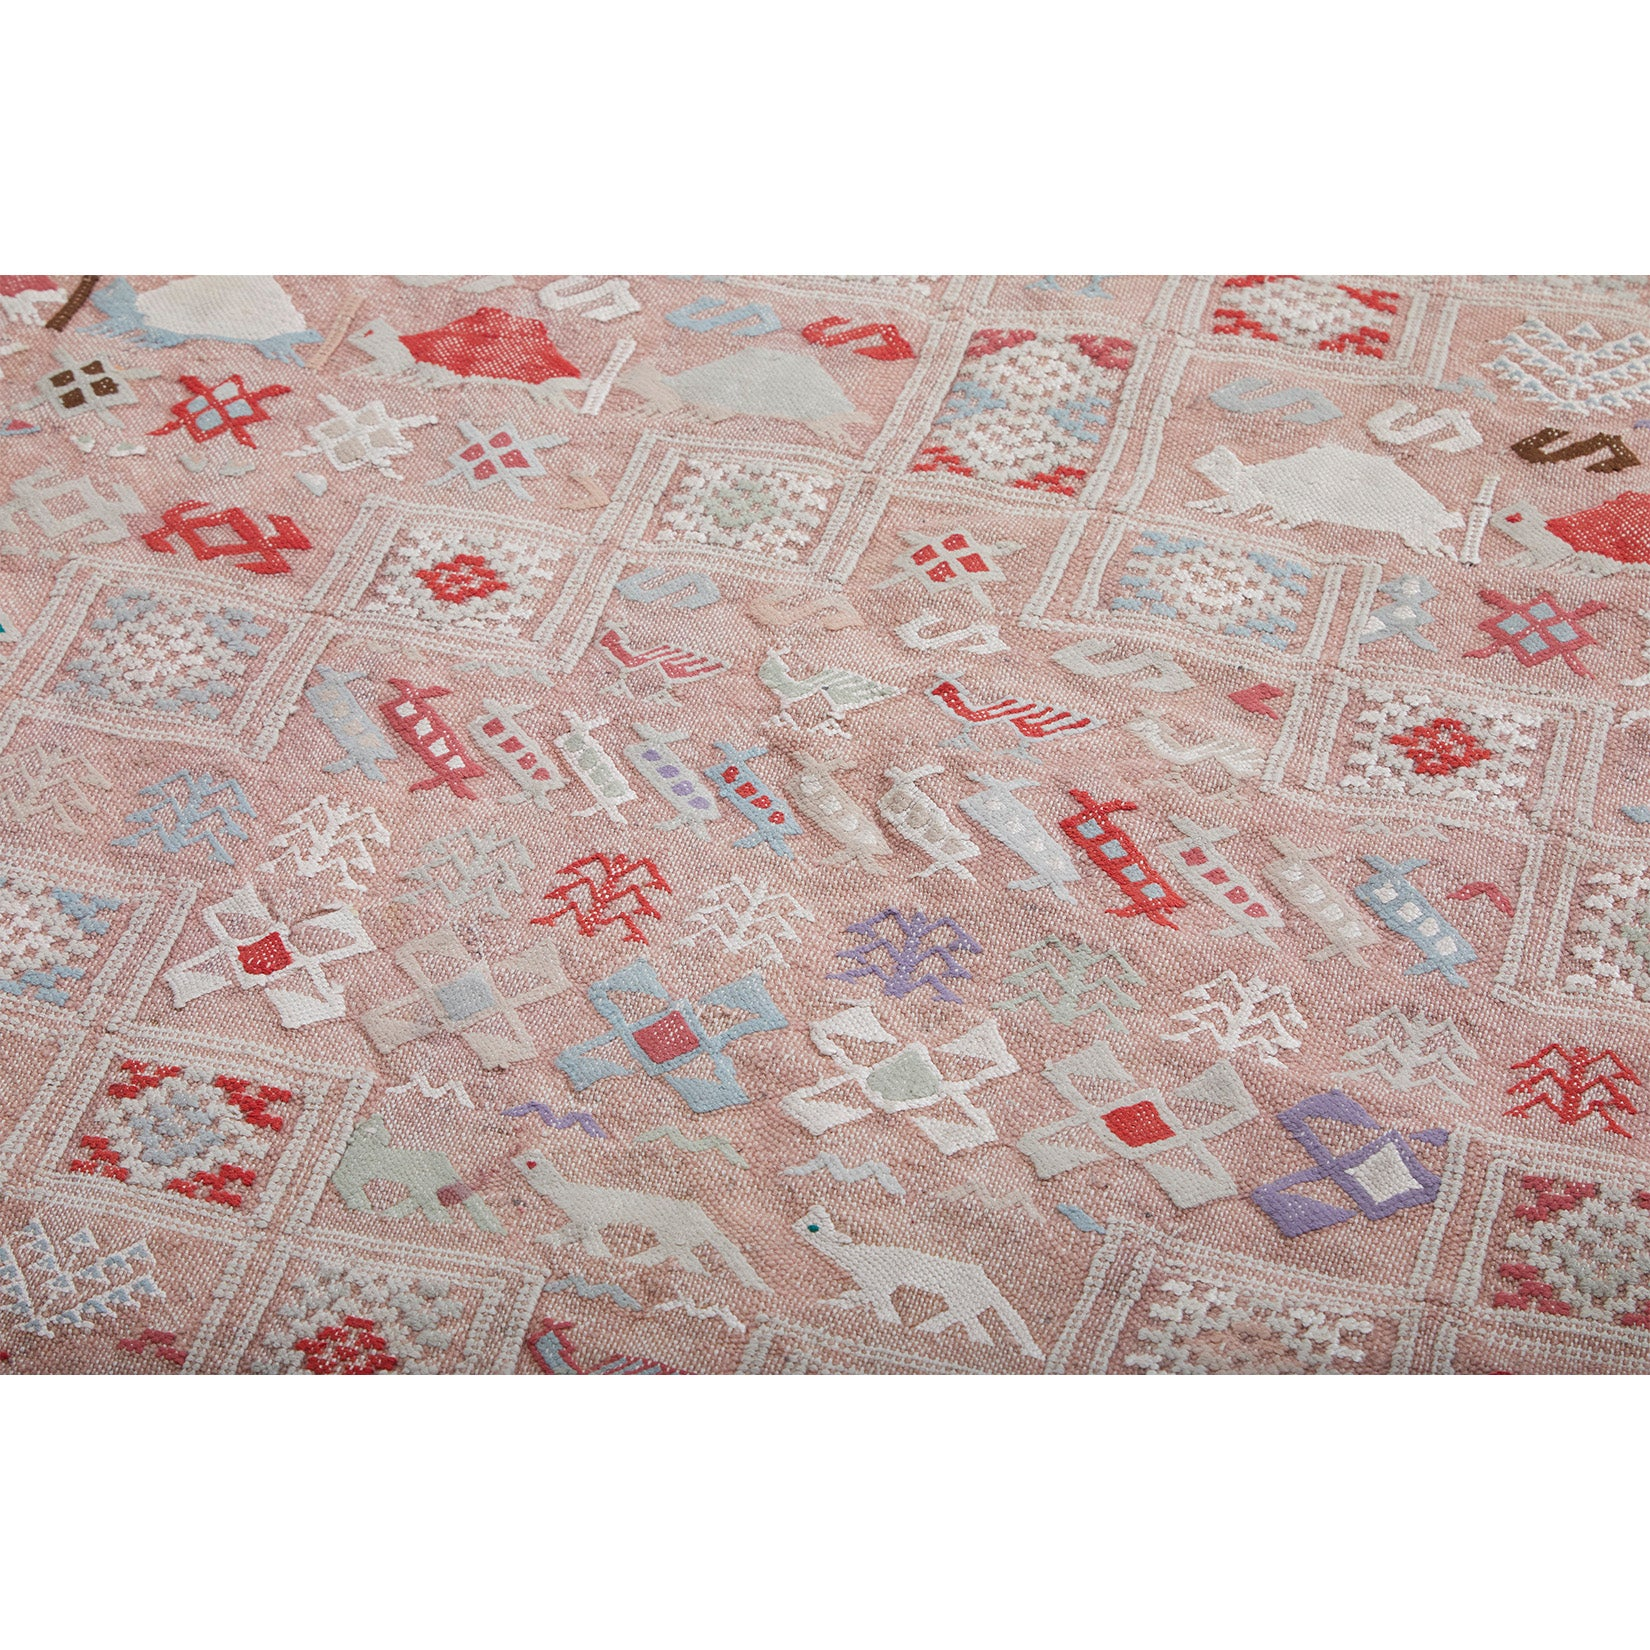 IGROUNA - Vintage Moroccan Area Rug with animals - Kantara | Moroccan Rugs